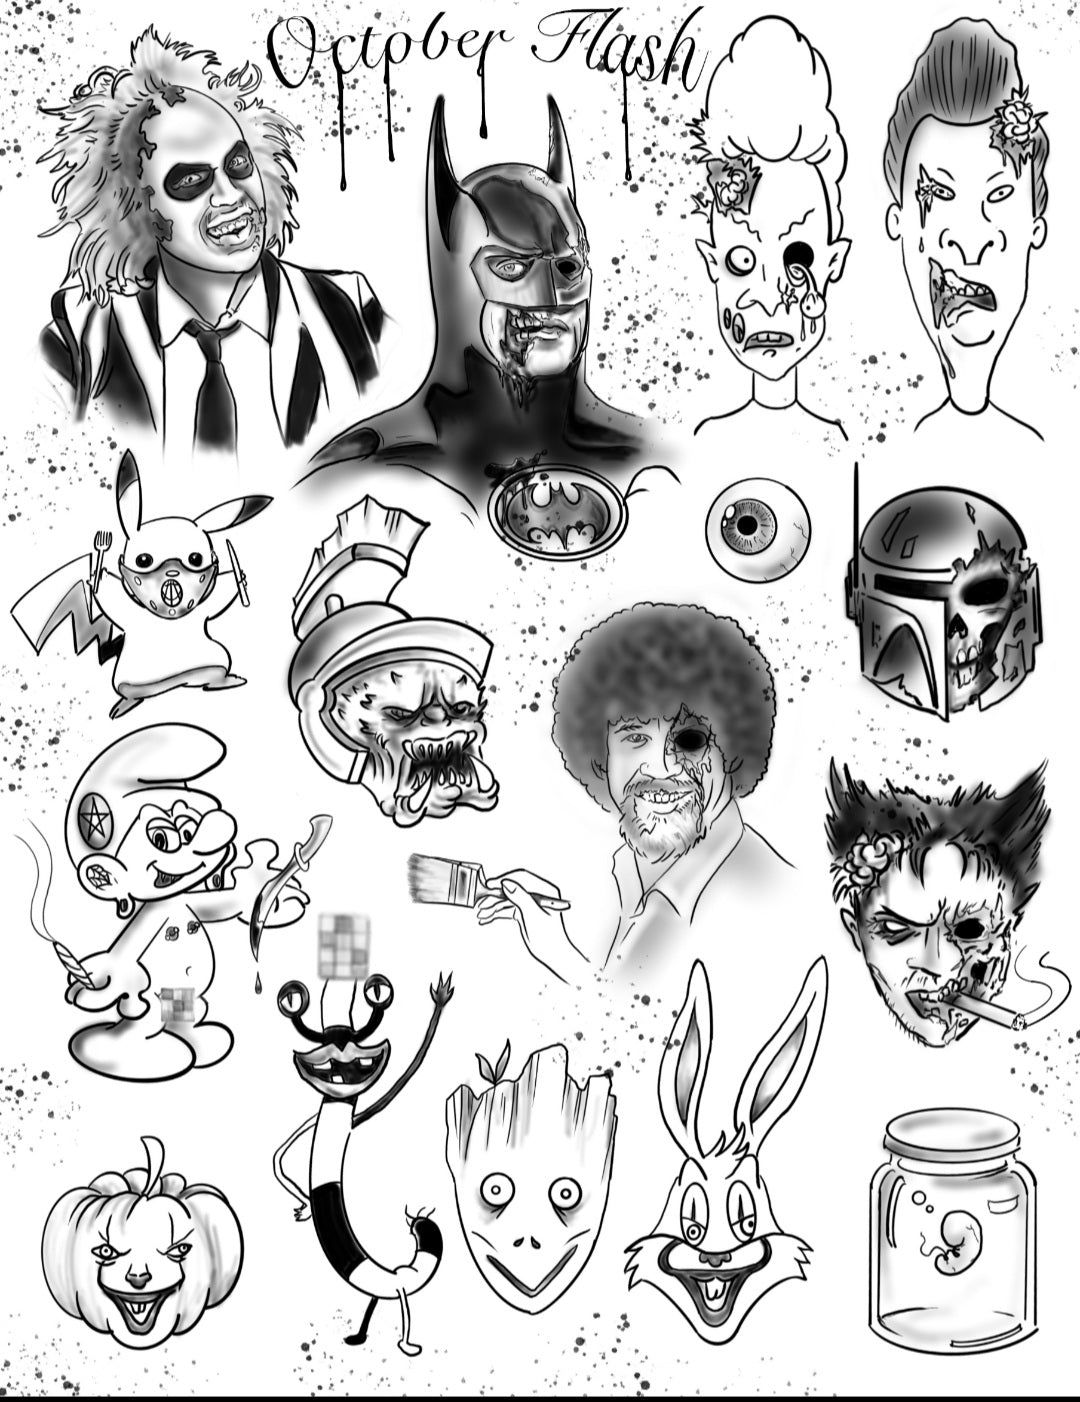 Steves Halloween Tattoo Flash